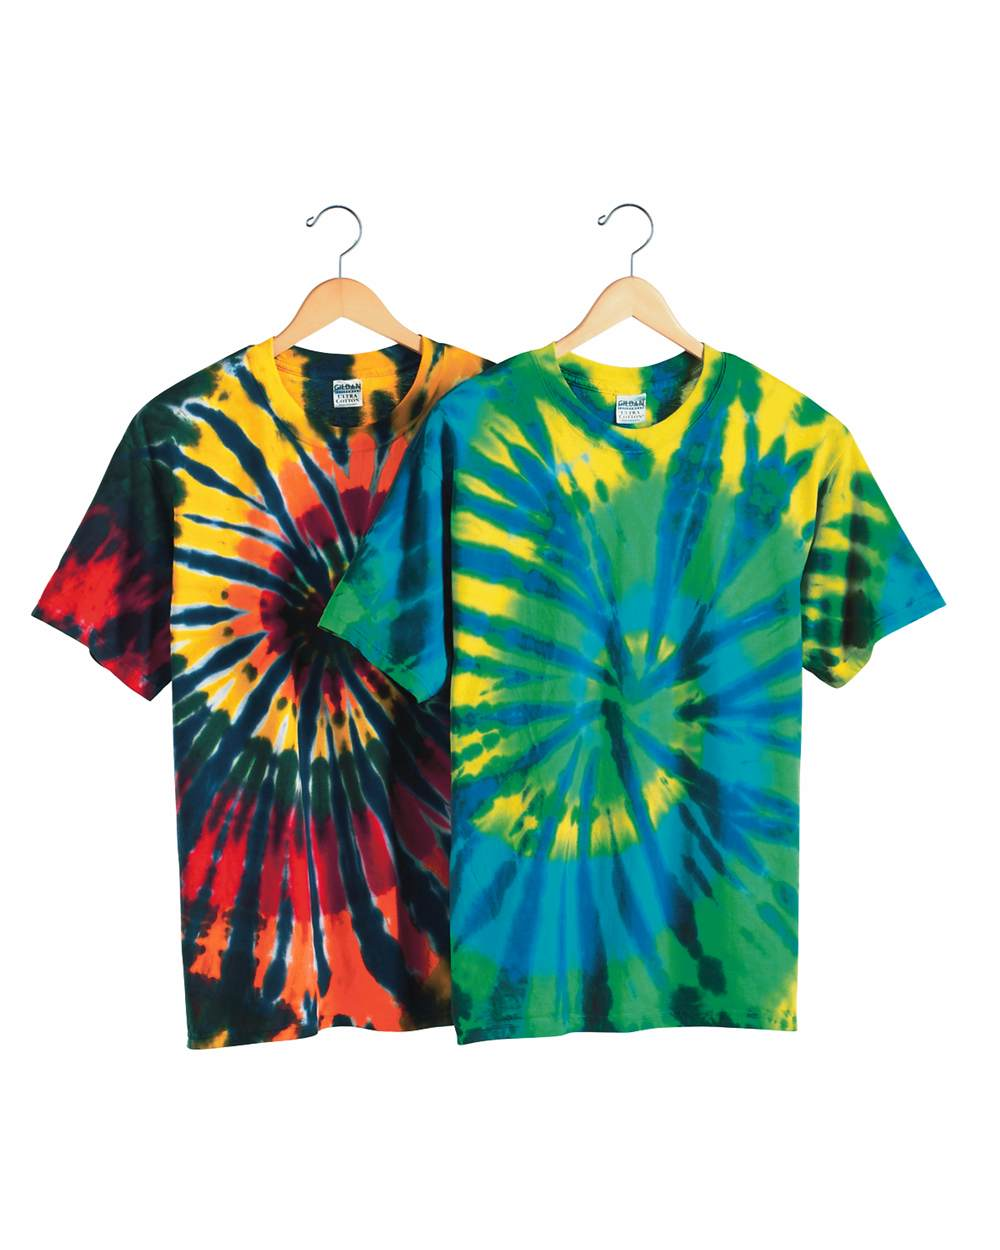 Dyenomite 200T2 Multi-Color Cut-Spiral Short Sleeve T-Shirt